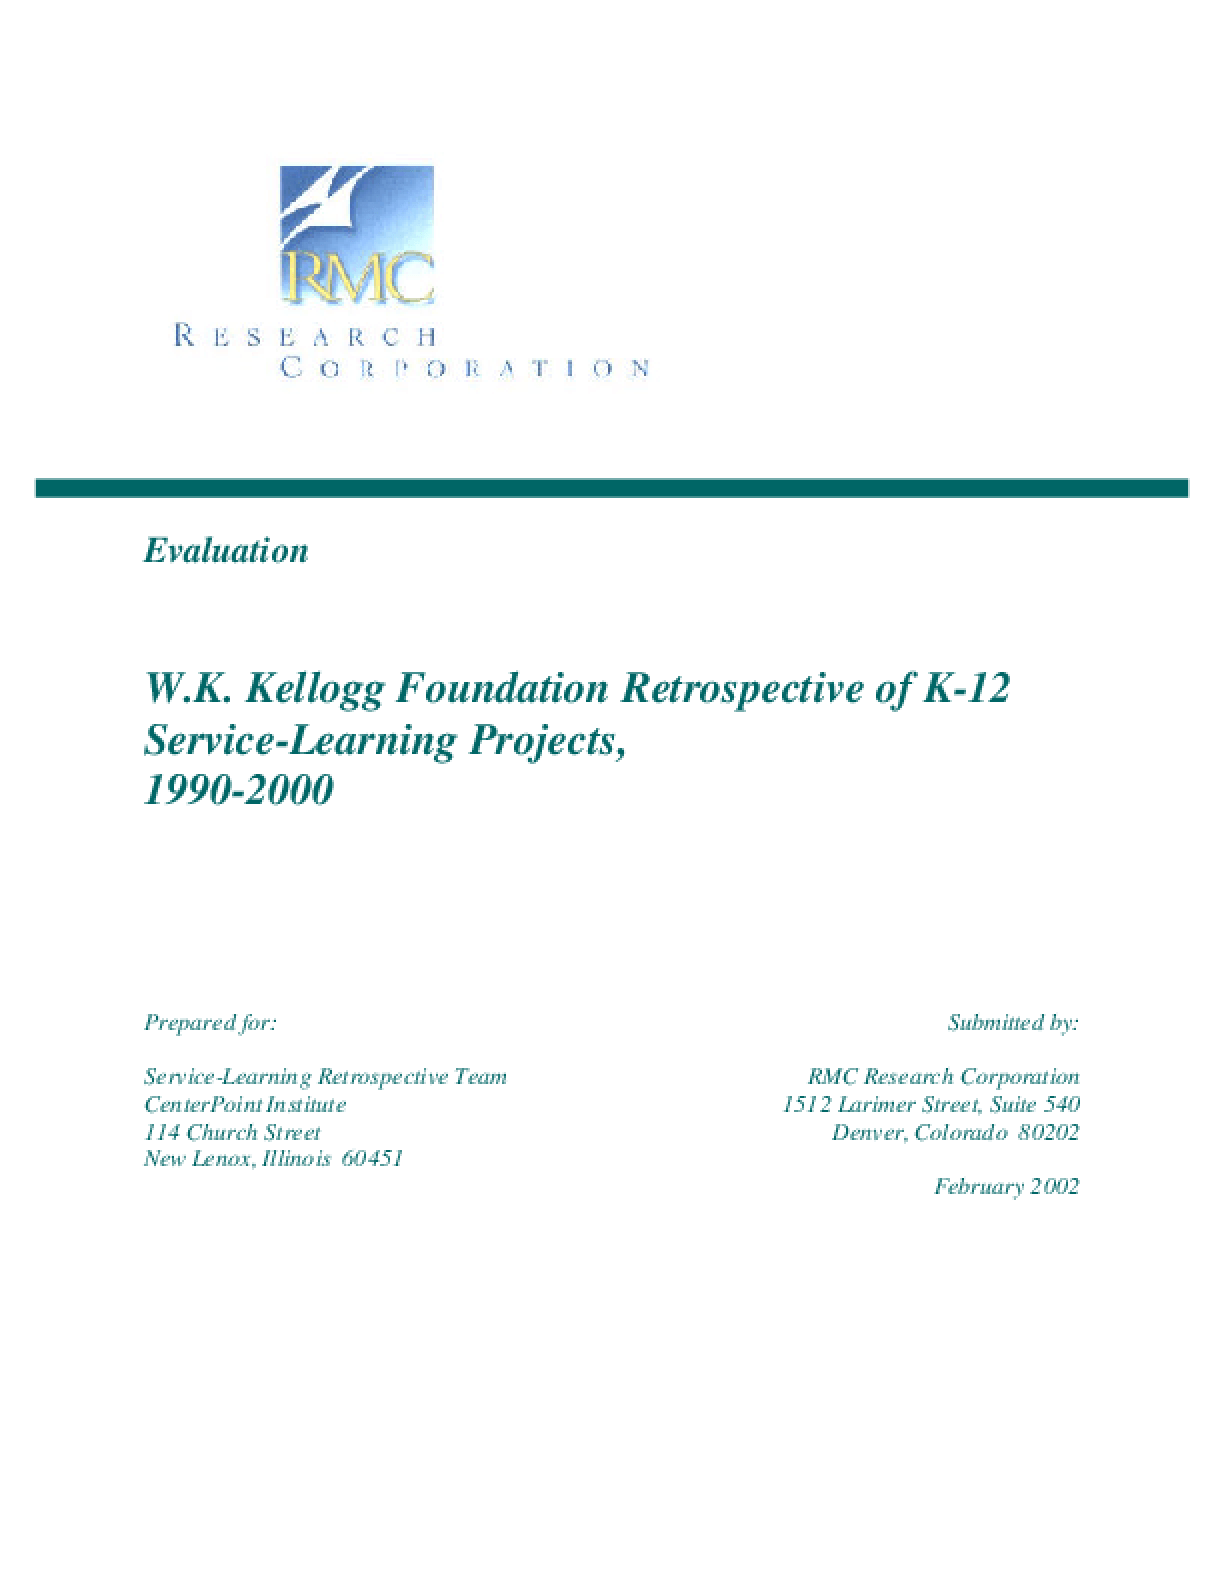 W. K. Kellogg Foundation: Retrospective Evaluation of K-12 Service-Learning Projects, 1990-2000